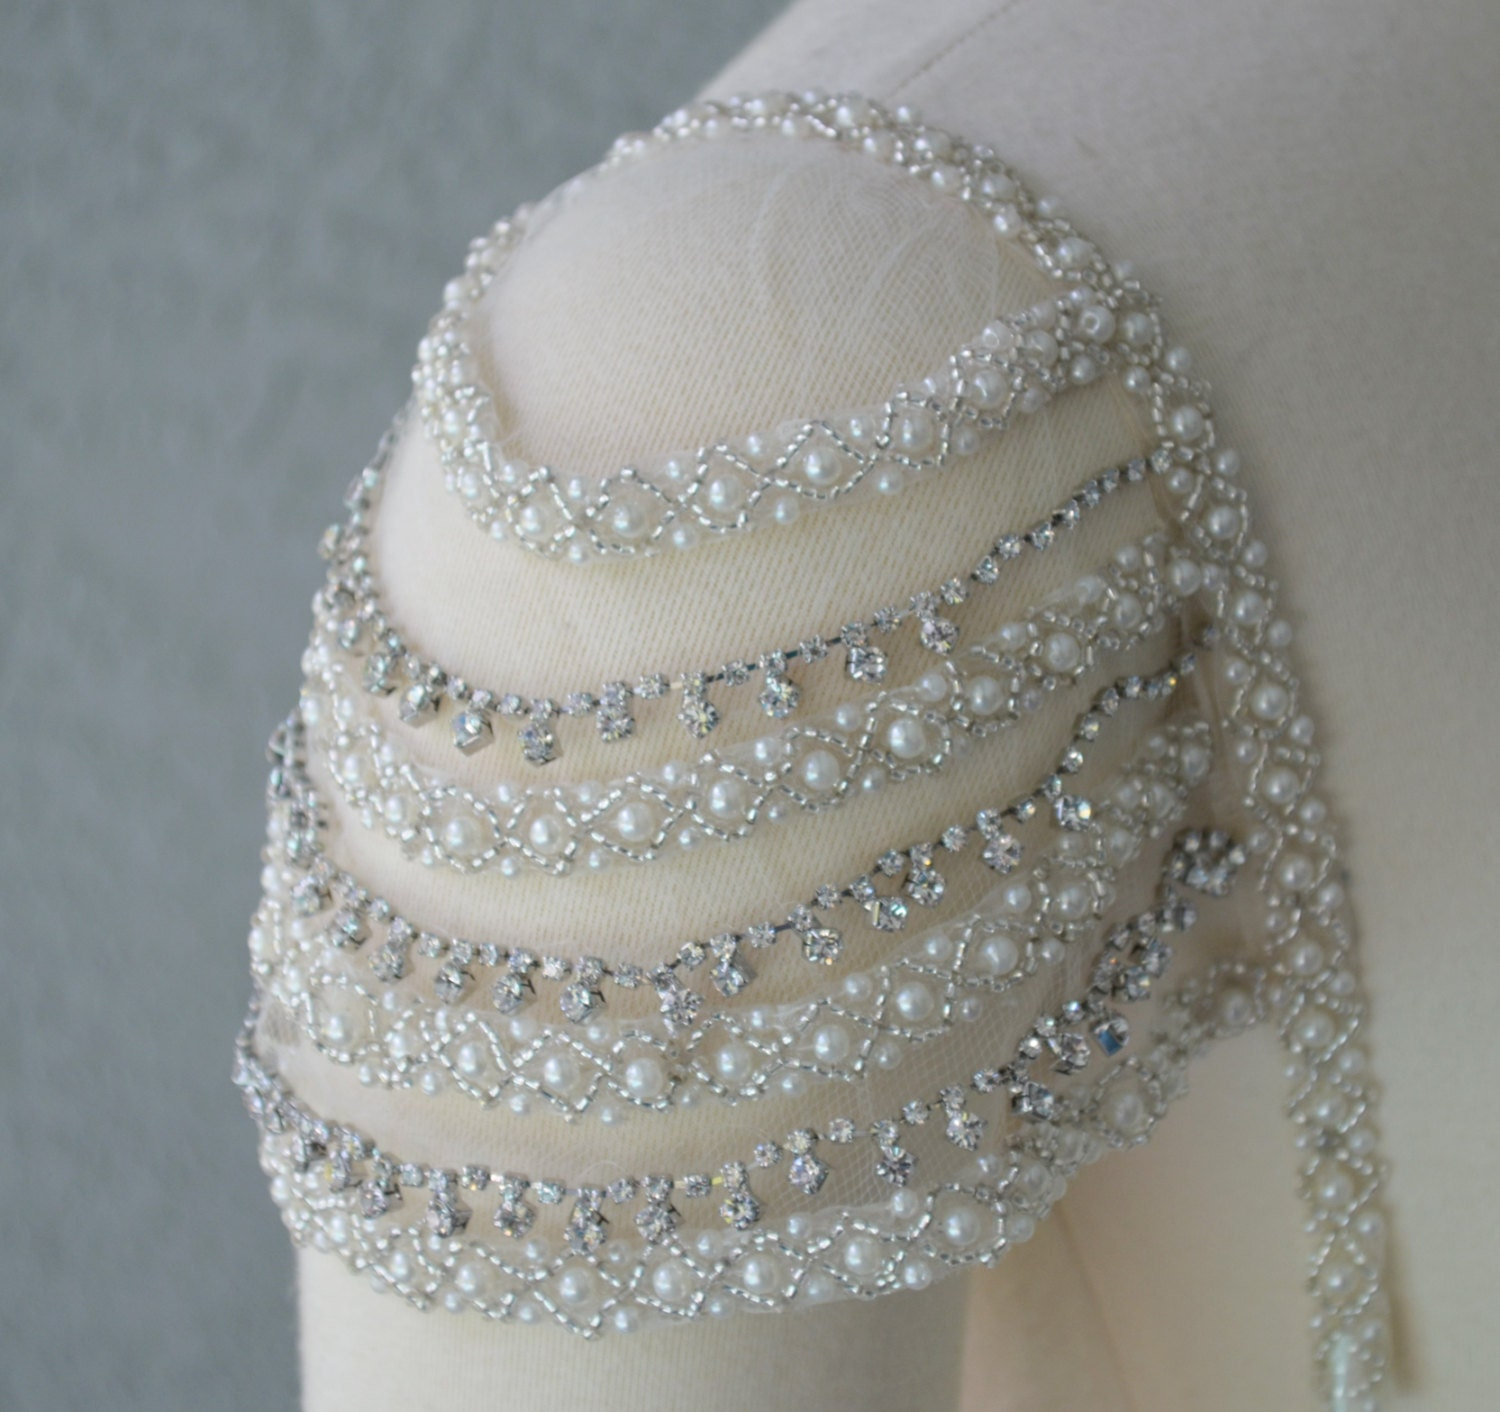 Adding Cap Sleeves Wedding Dress To: Detachable Add-on Beaded Ivory And Rhinestone Cap Sleeves Set